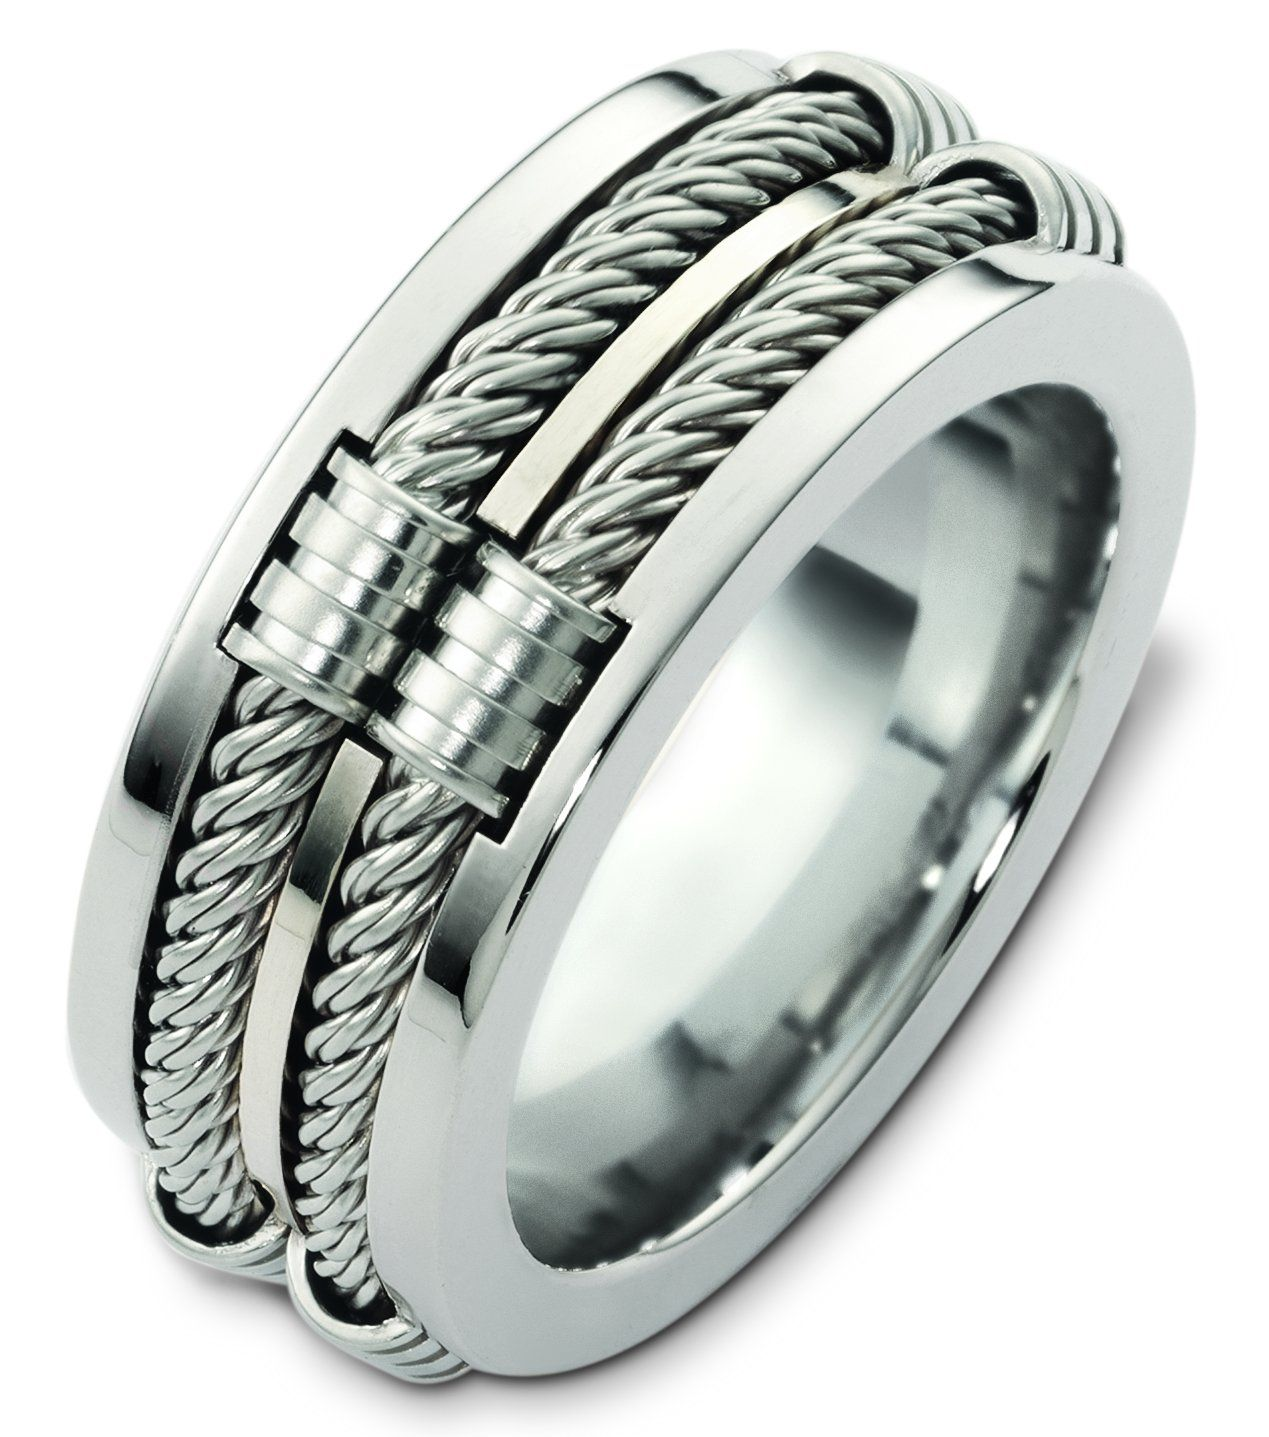 Cable Mens Ring Mensrings If This Is Stainless Steel I Guarantee There Will Be Problems With The Cable Breaking Just Rings For Men Jewelry Mens Jewelry